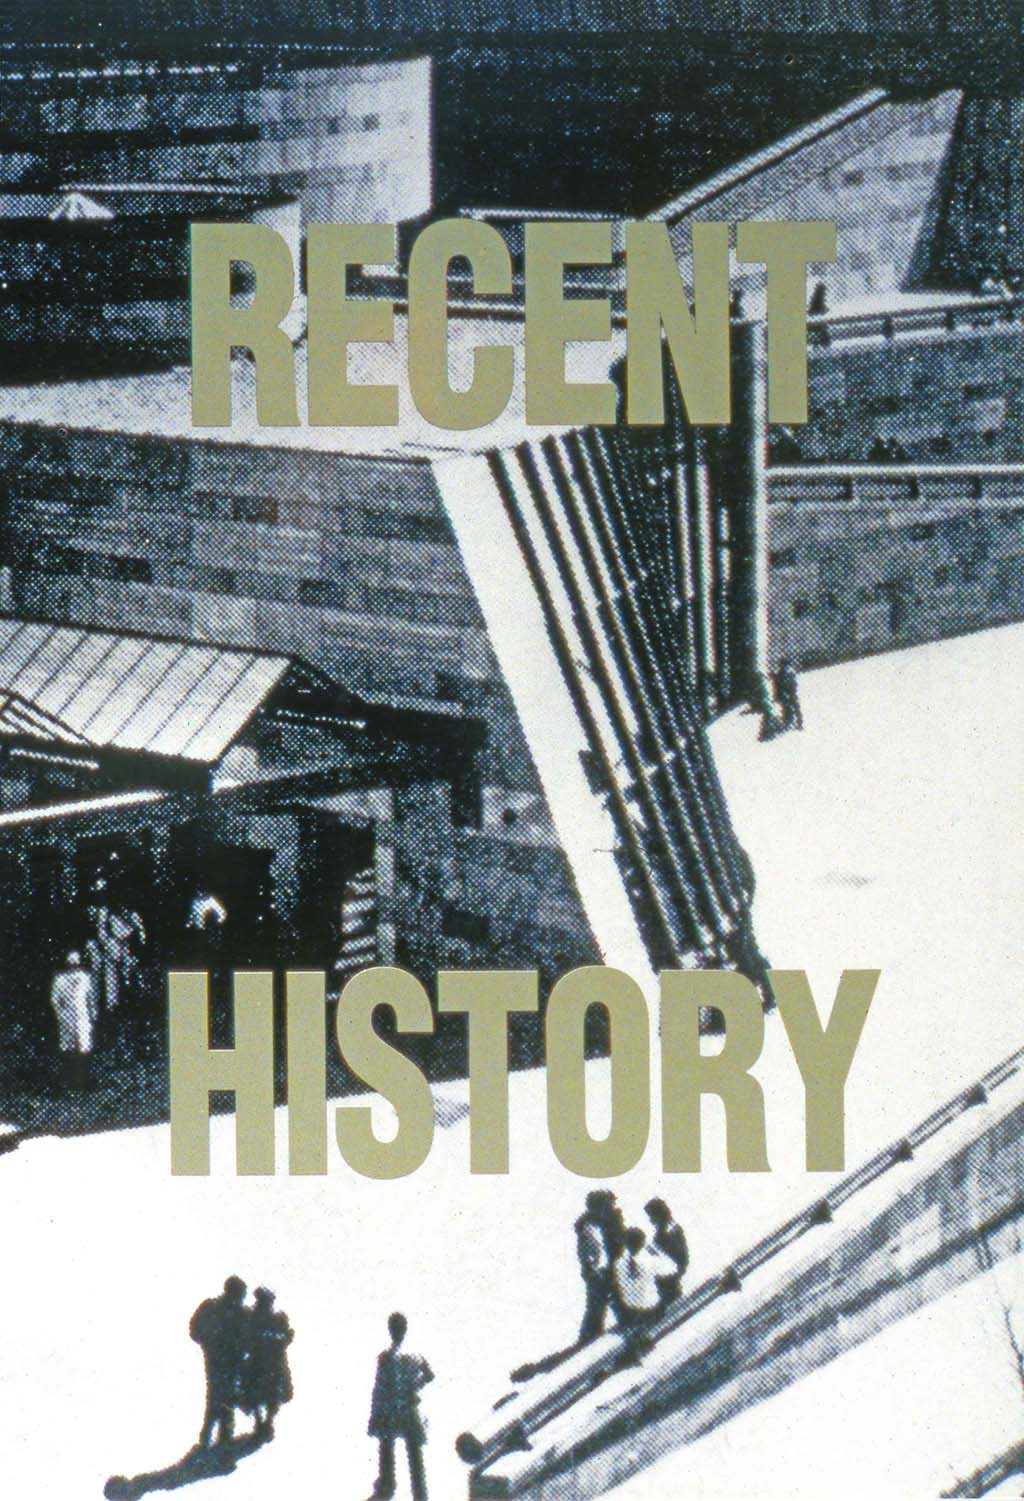 Recent History. Curated by Art in Ruins. Herbert Read Gallery, Canterbury, UK 1991. Card